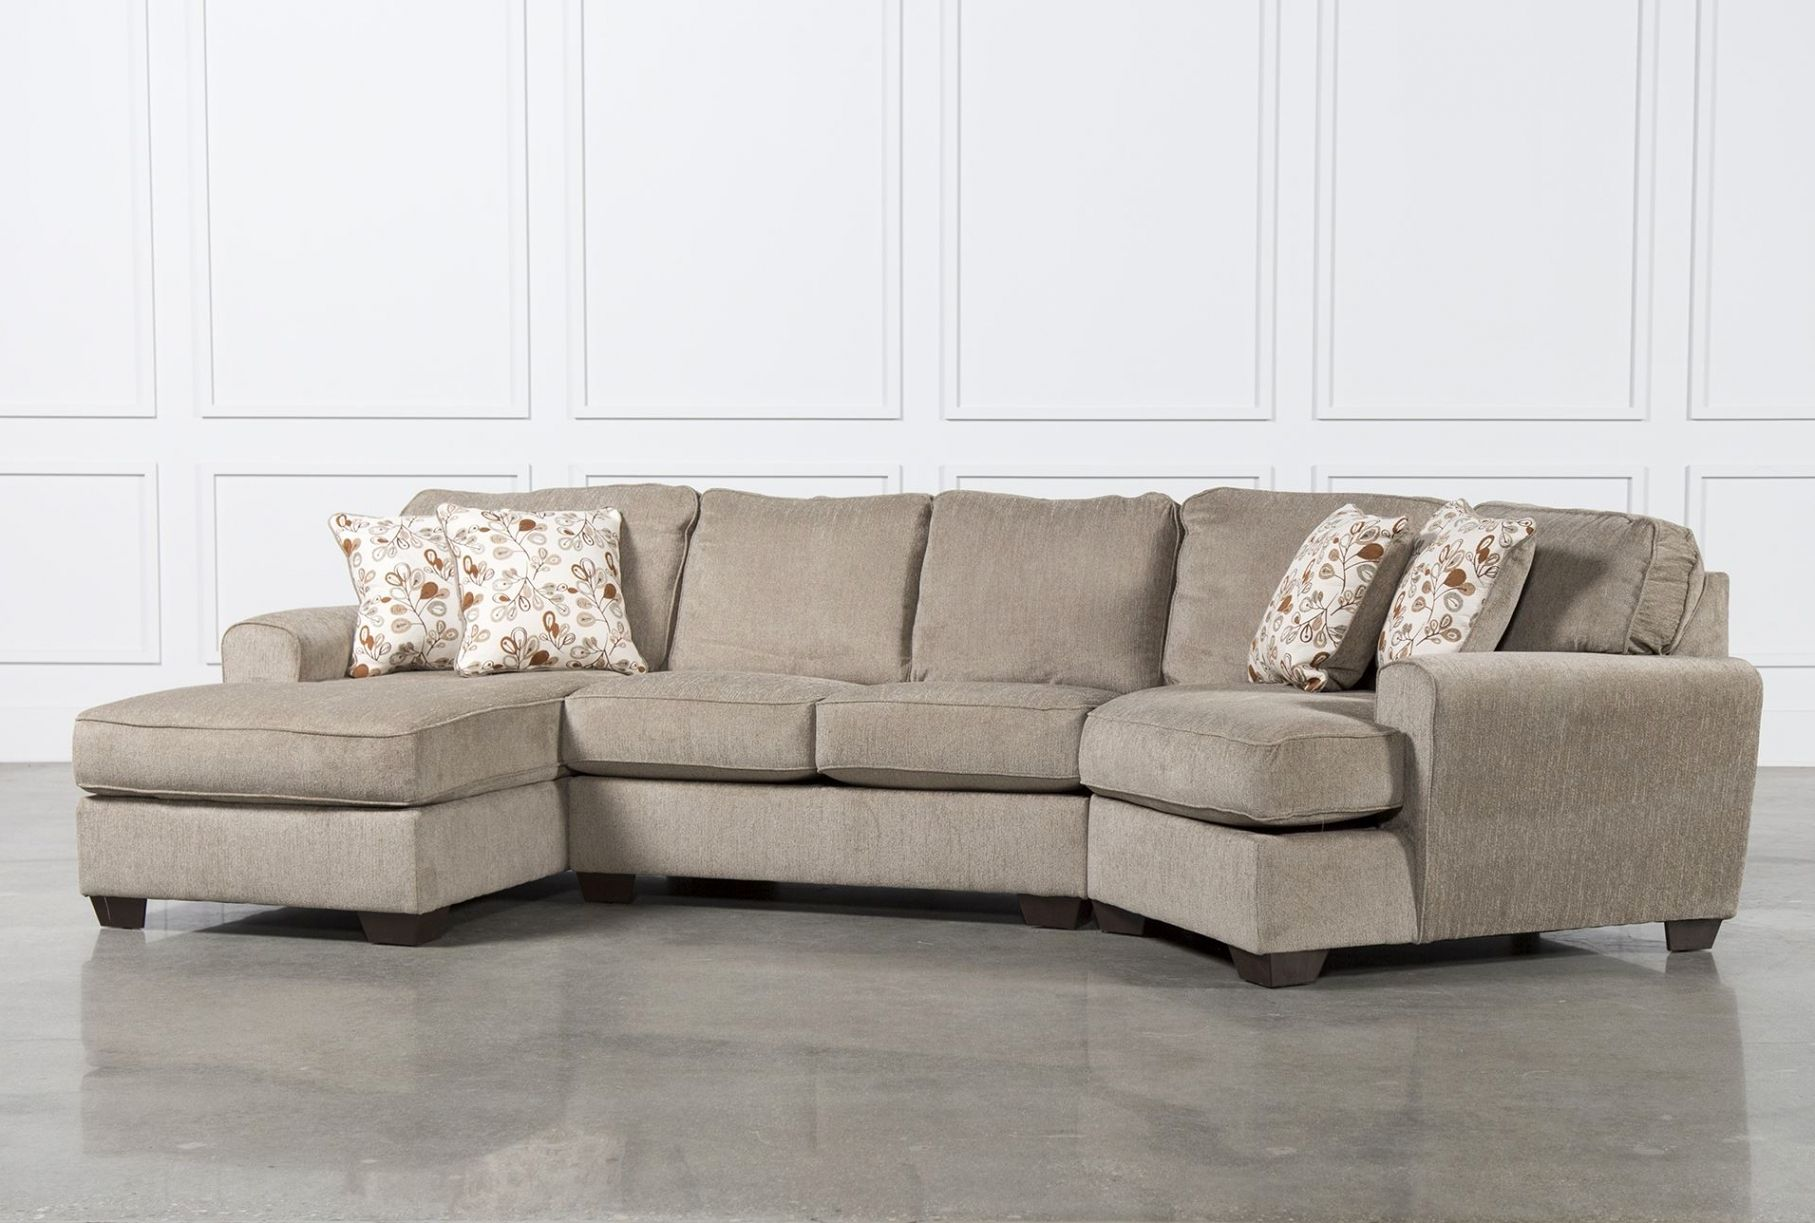 Lovely Sectional Sofas With Recliners And Cup Holders Photographs Sectional Sofas With Reclin Sectional Sofa With Chaise Small Sectional Sofa Couch With Chaise